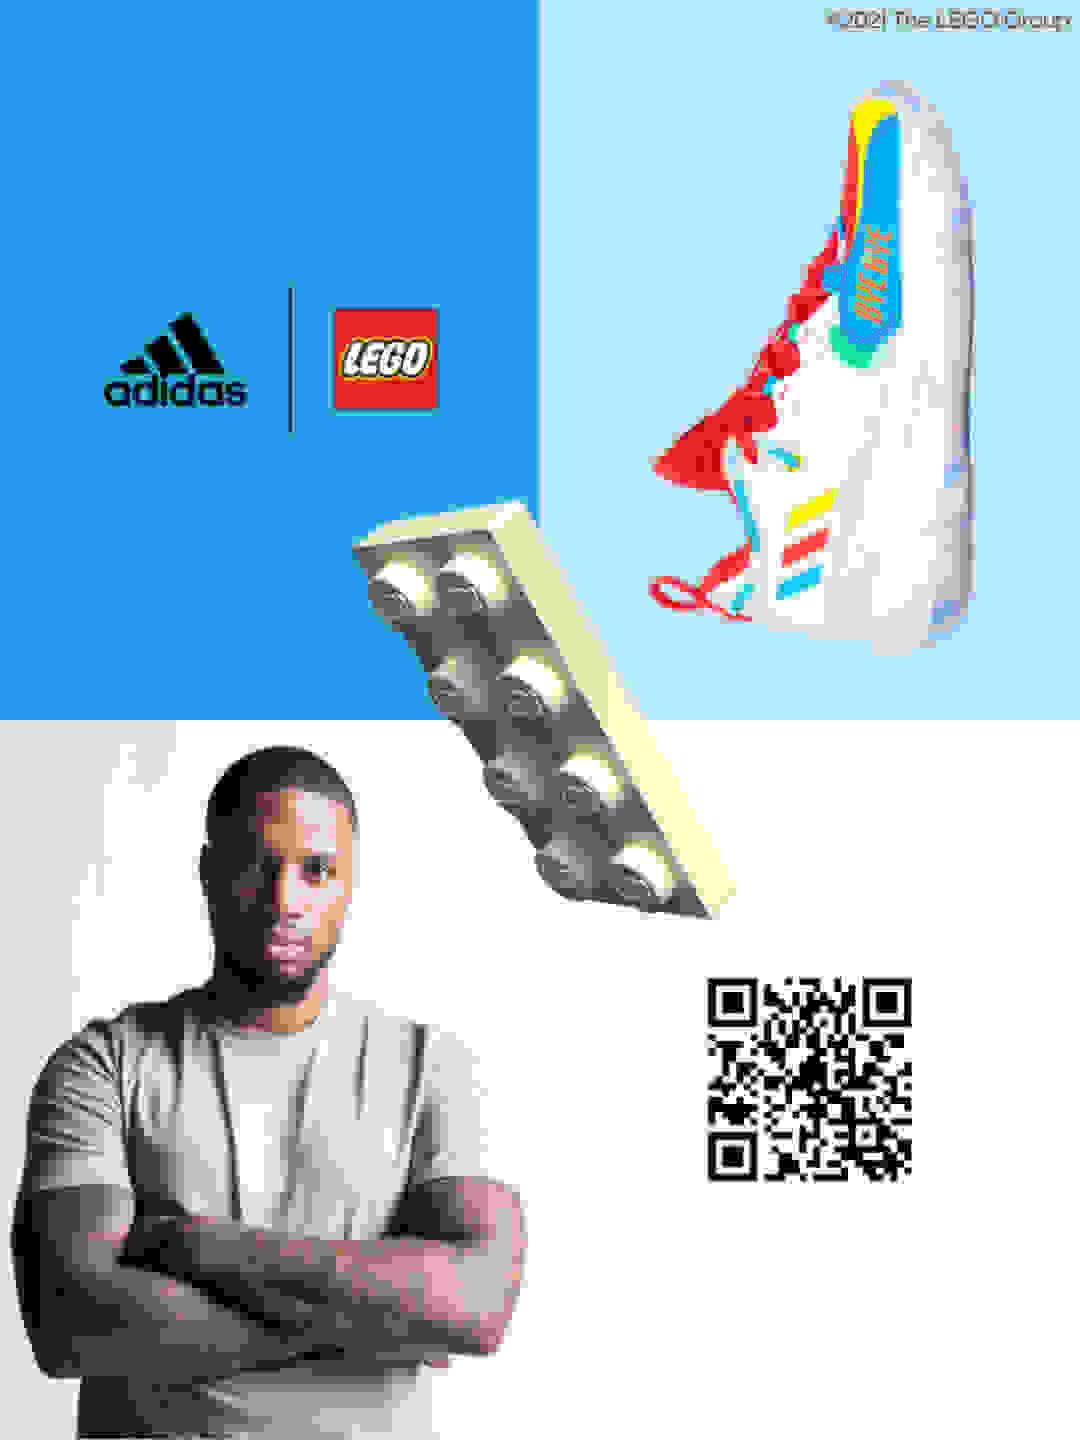 A four-quadrant grid image featuring Damian Lillard and an adidas x LEGO® sneaker from the new basketball collection.